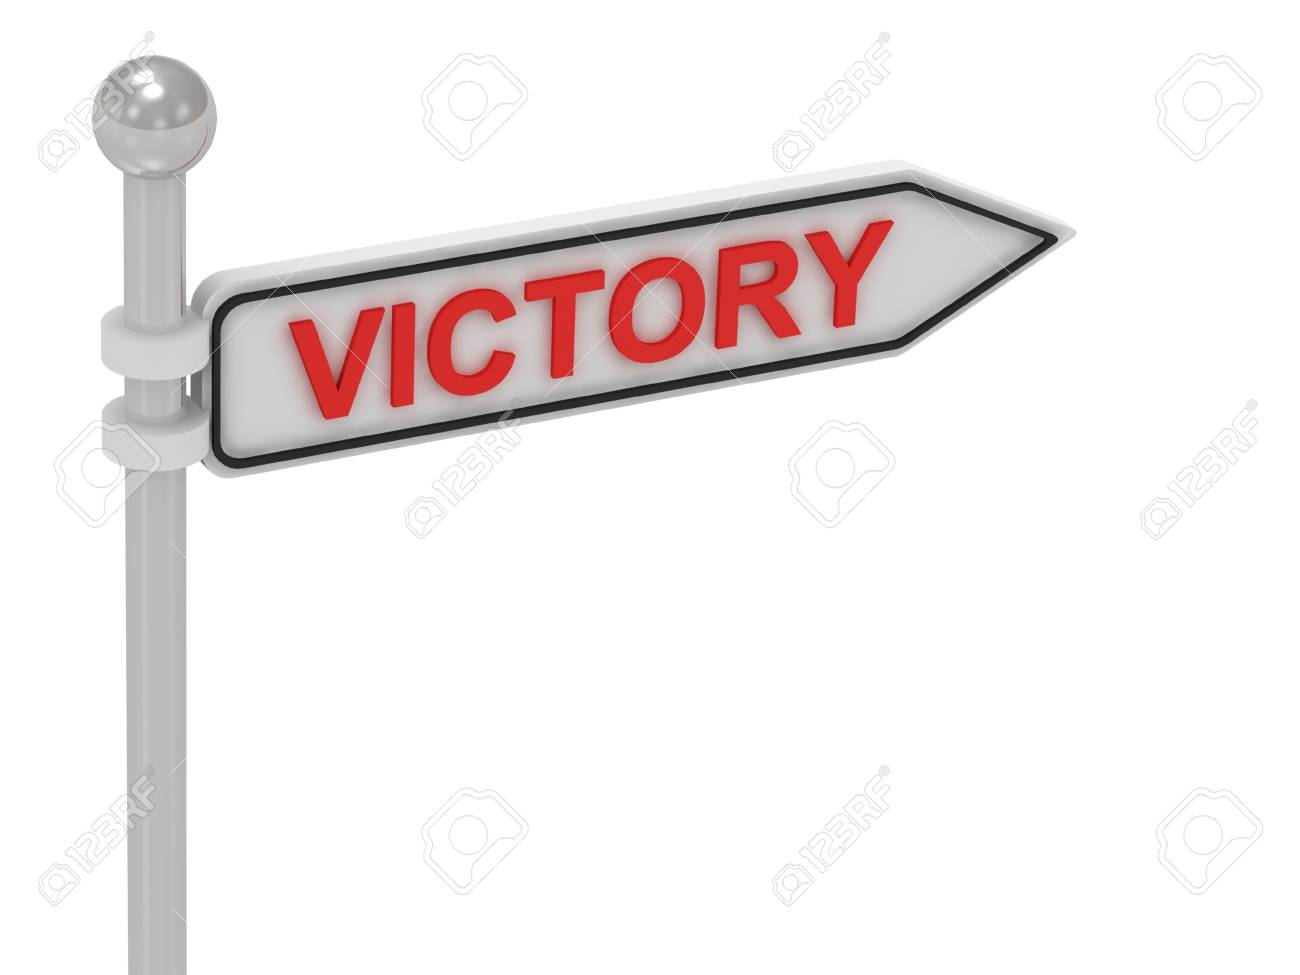 VICTORY arrow sign with letters on isolated white background Stock Photo - 14626296